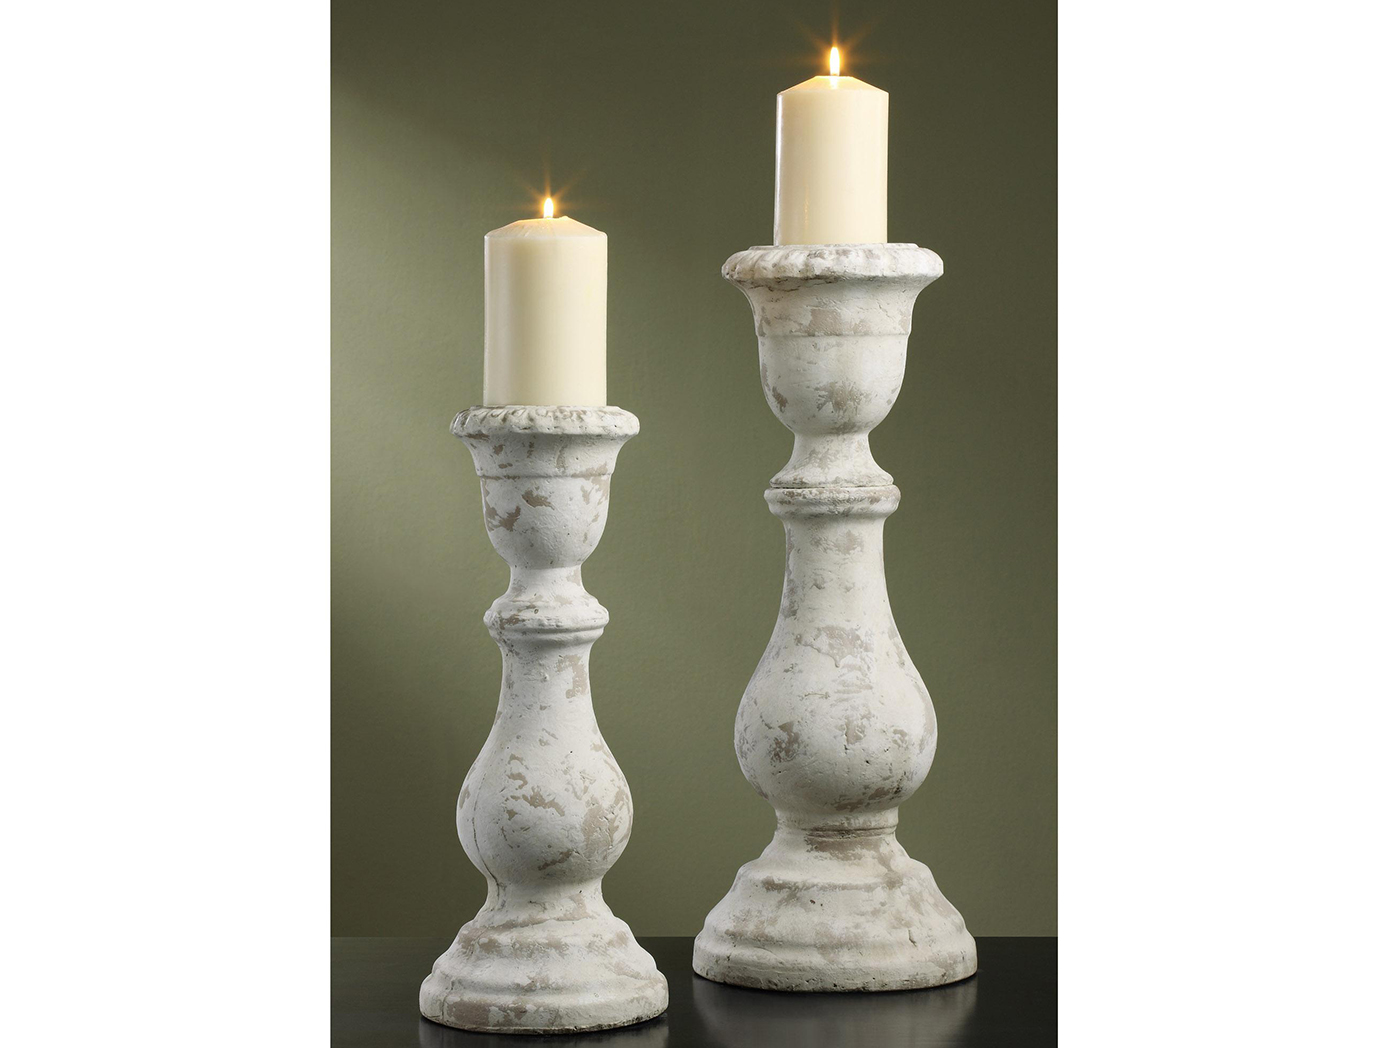 "Set of 2 Antique White Candleholder 16/20""H"